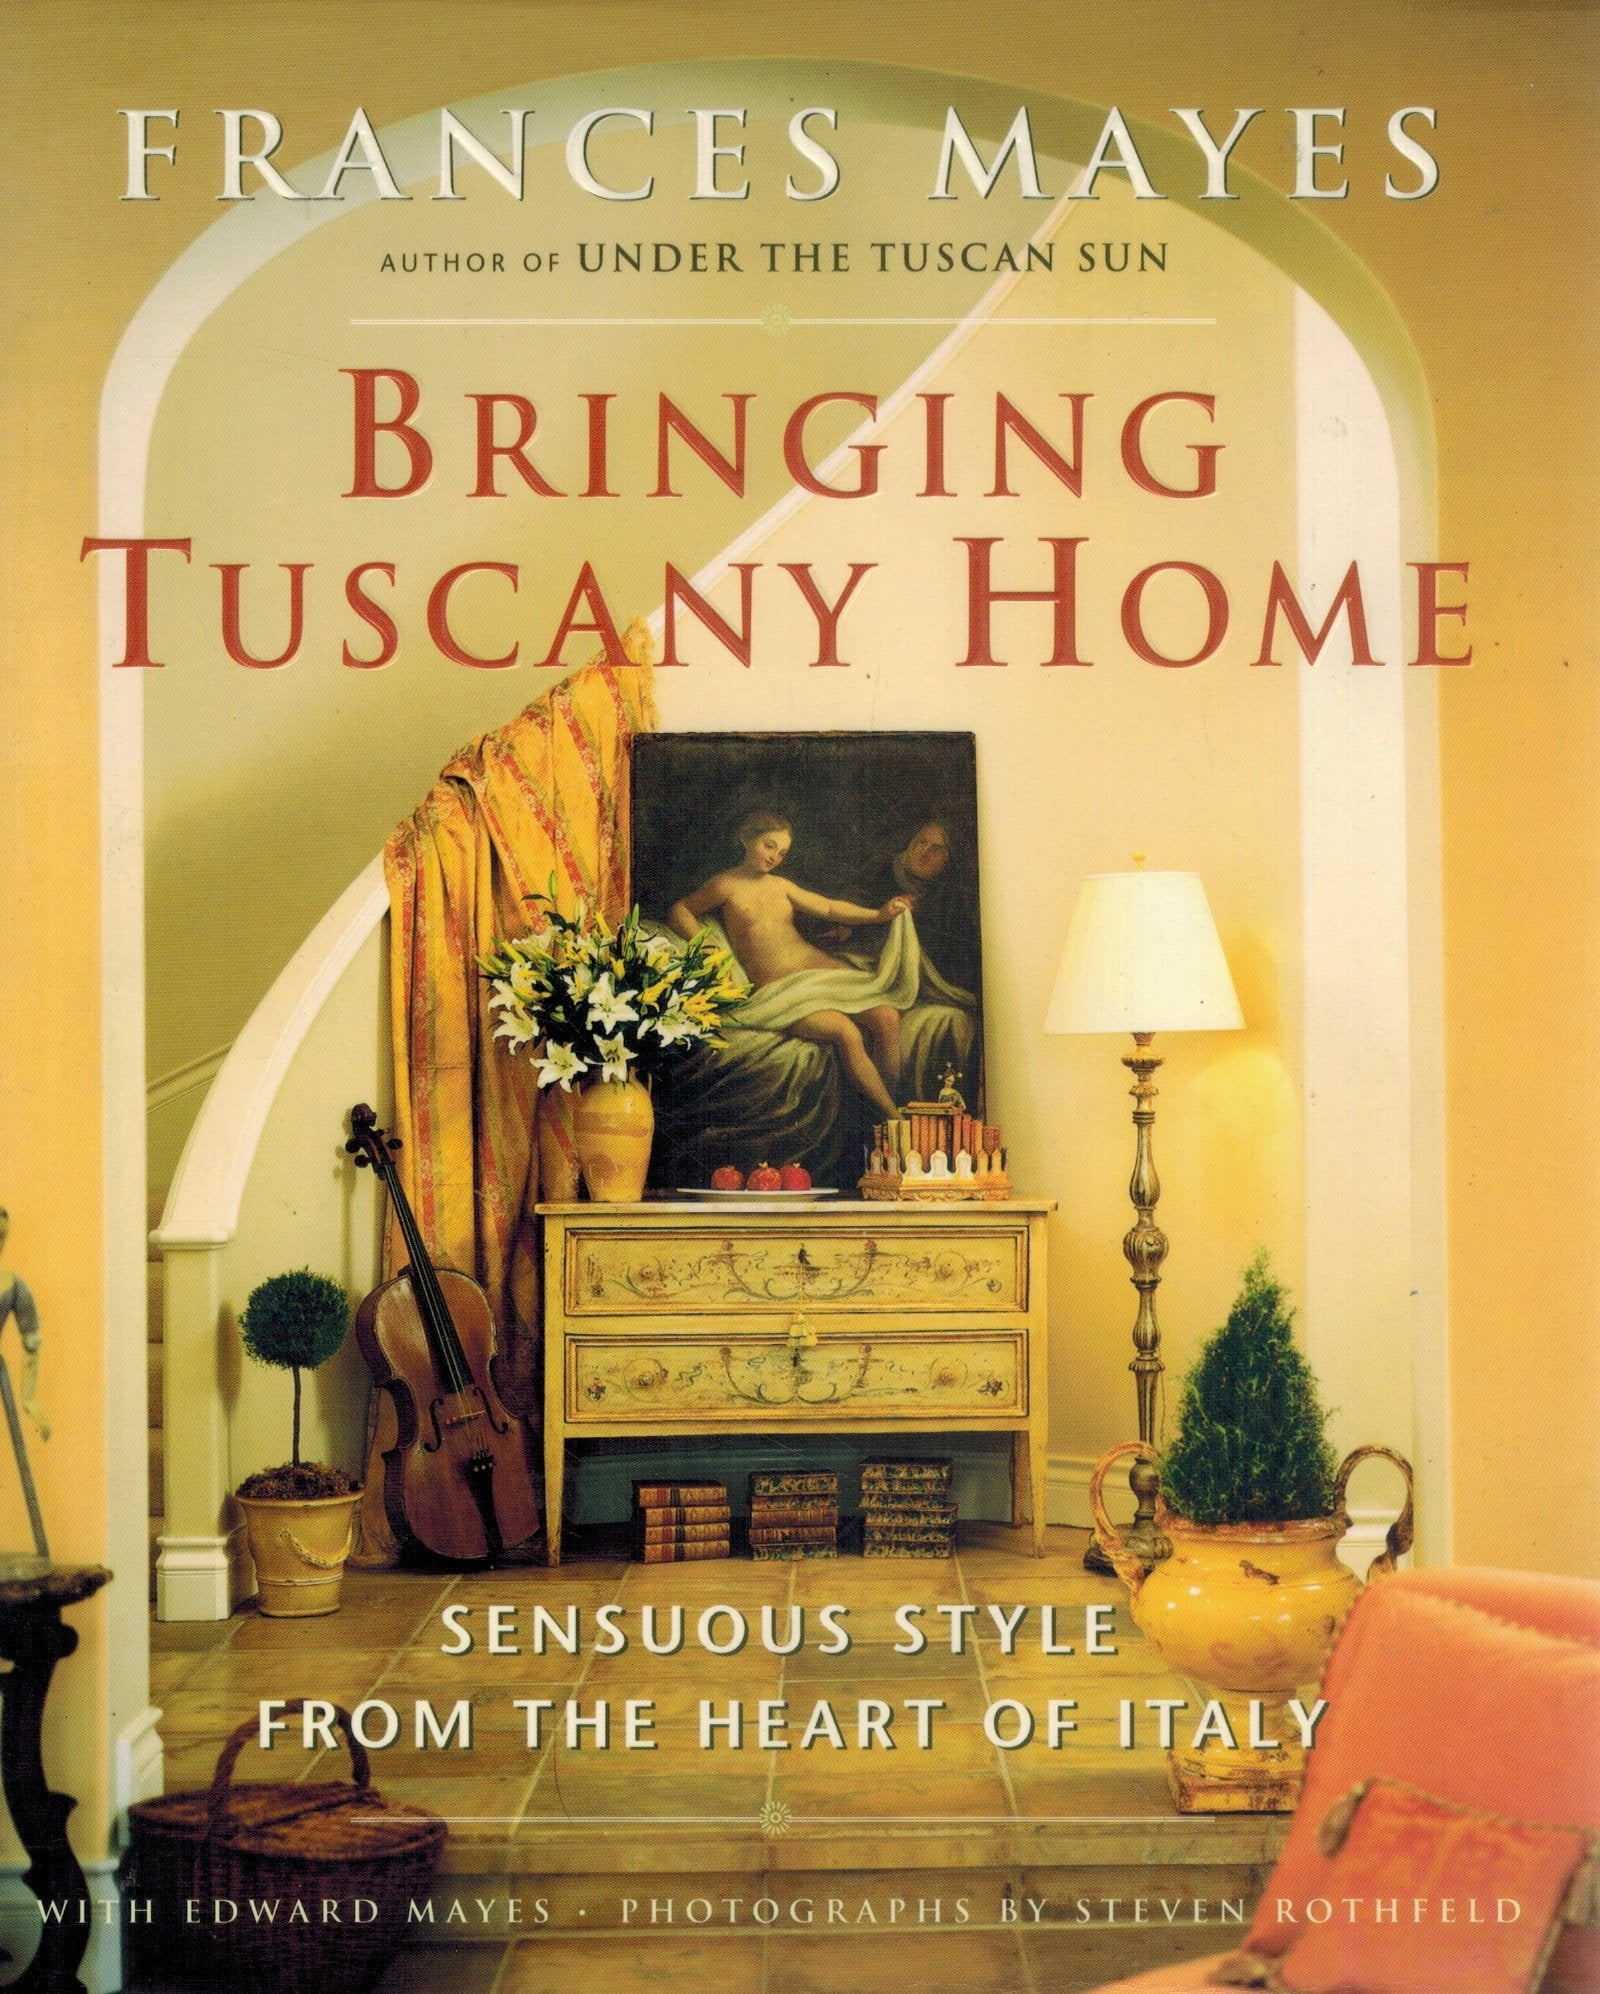 Bringing Tuscany Home  Sensuous Style From the Heart of Italy  by Mayes, Frances & Edward Mayes & Steven Rothfeld